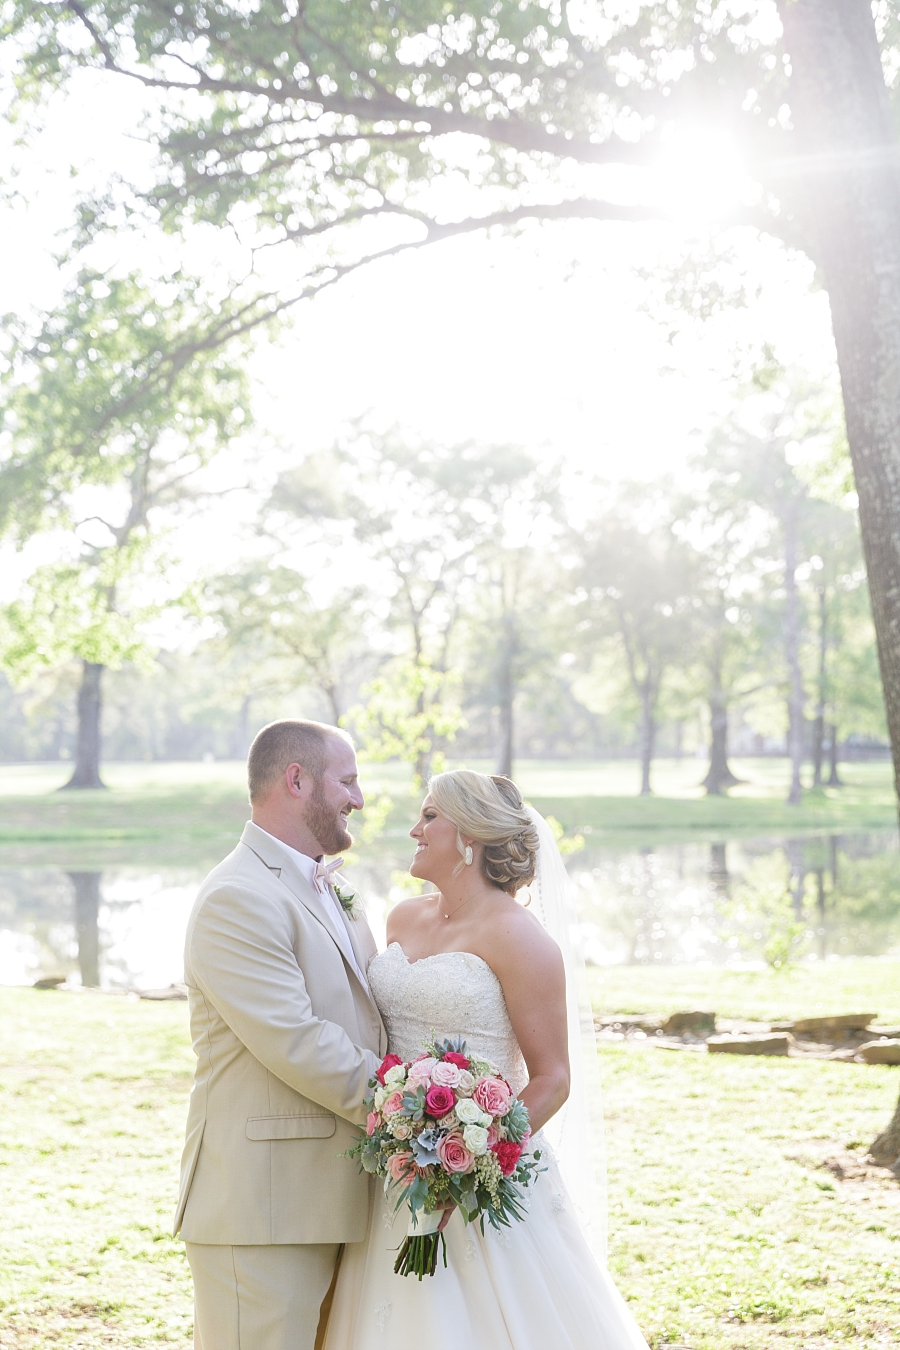 Stacy-Anderson-Photography-Balmorhea-Houston-Wedding-Photographer_0066.jpg